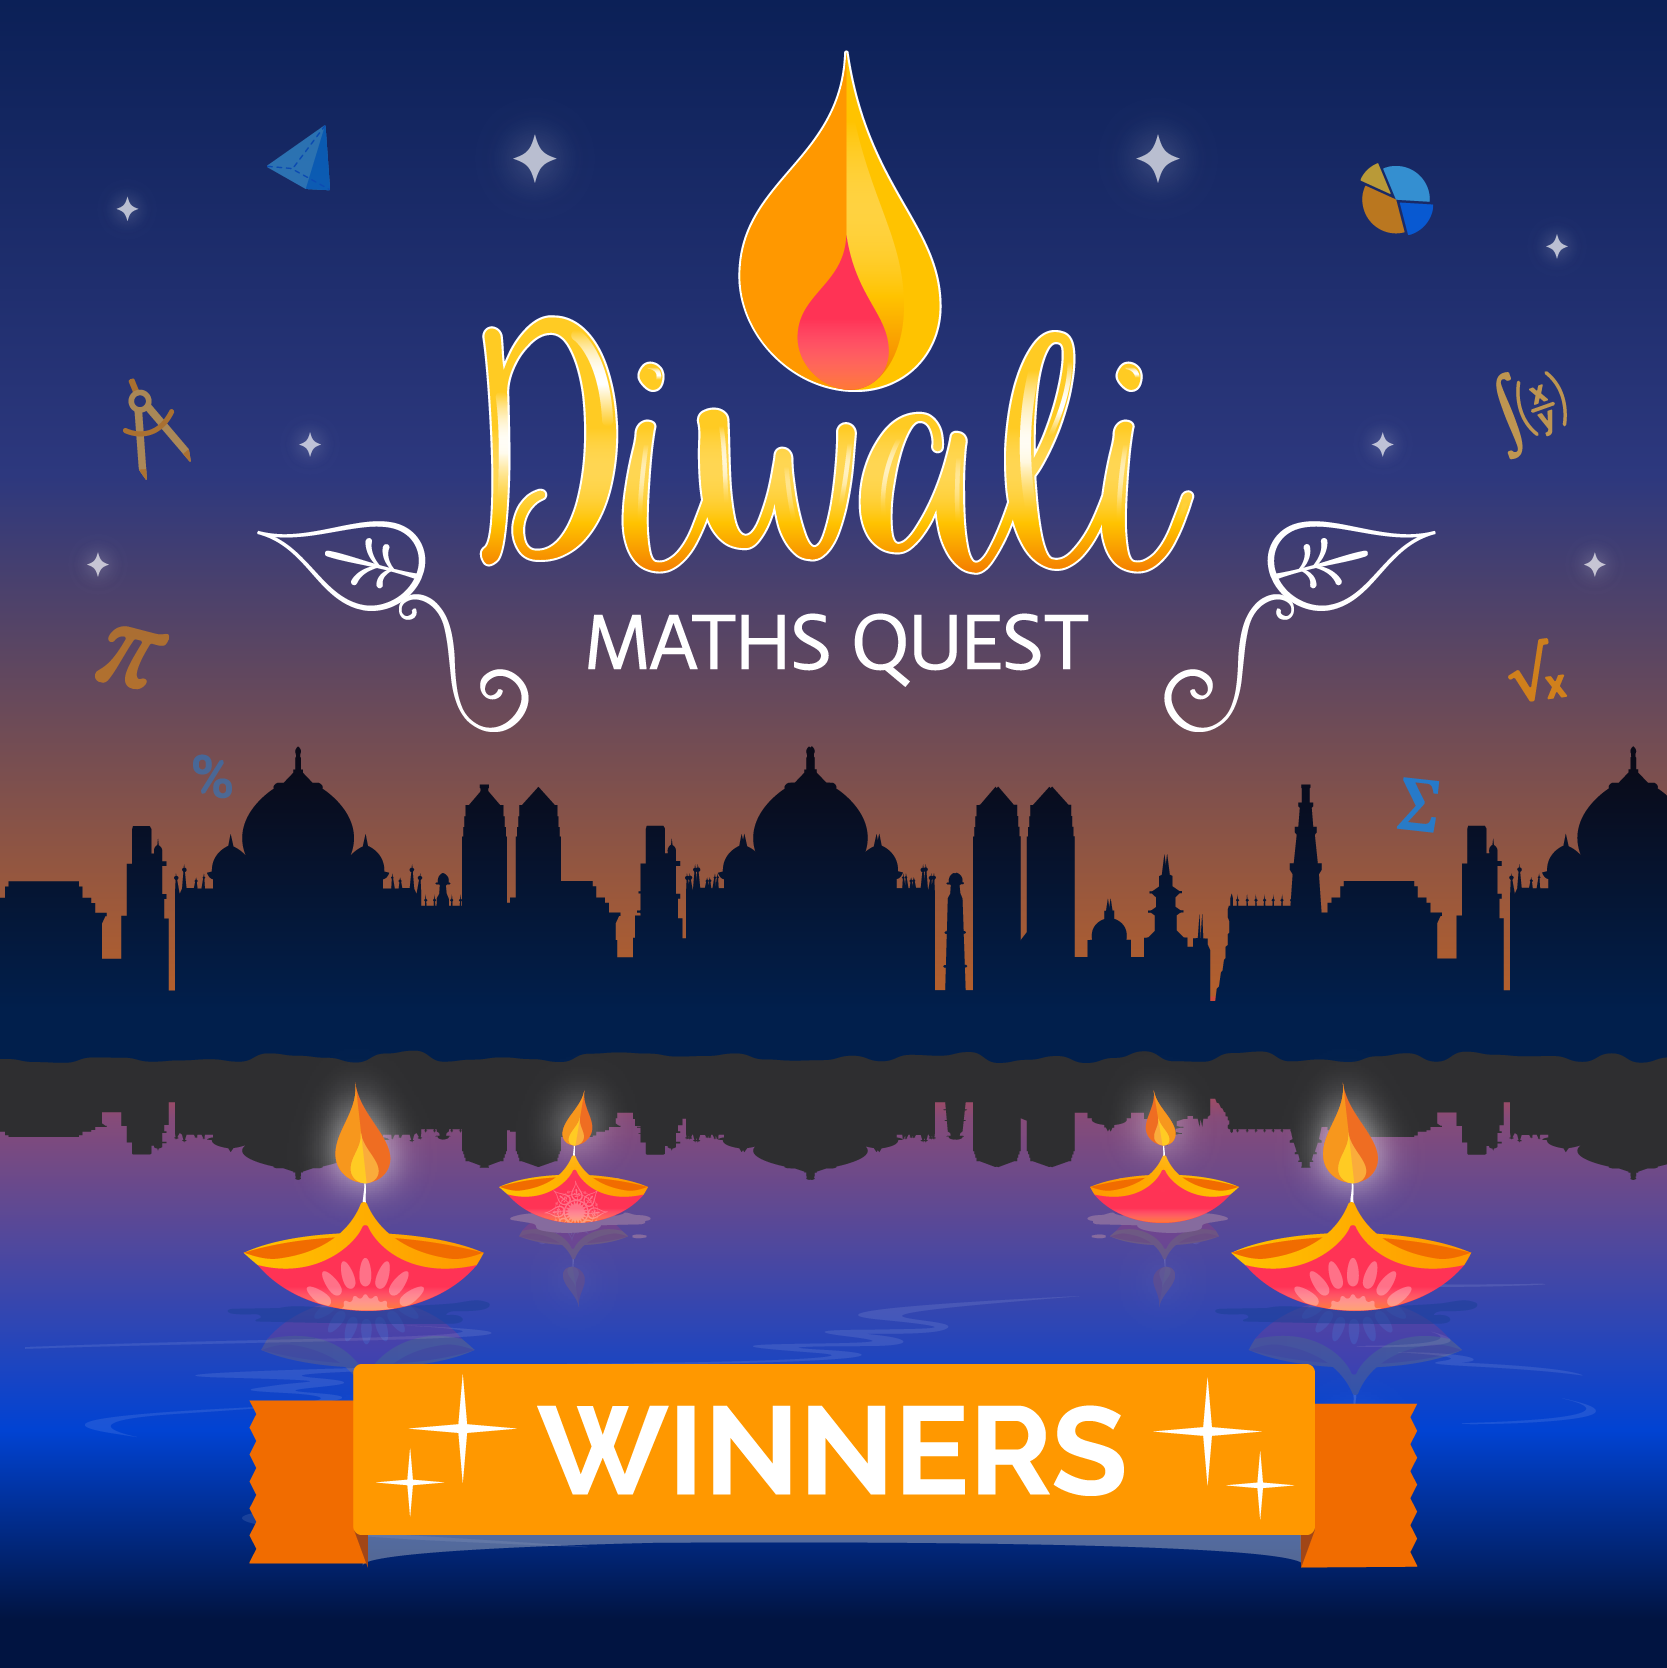 Diwali Maths Quest - The Winners!